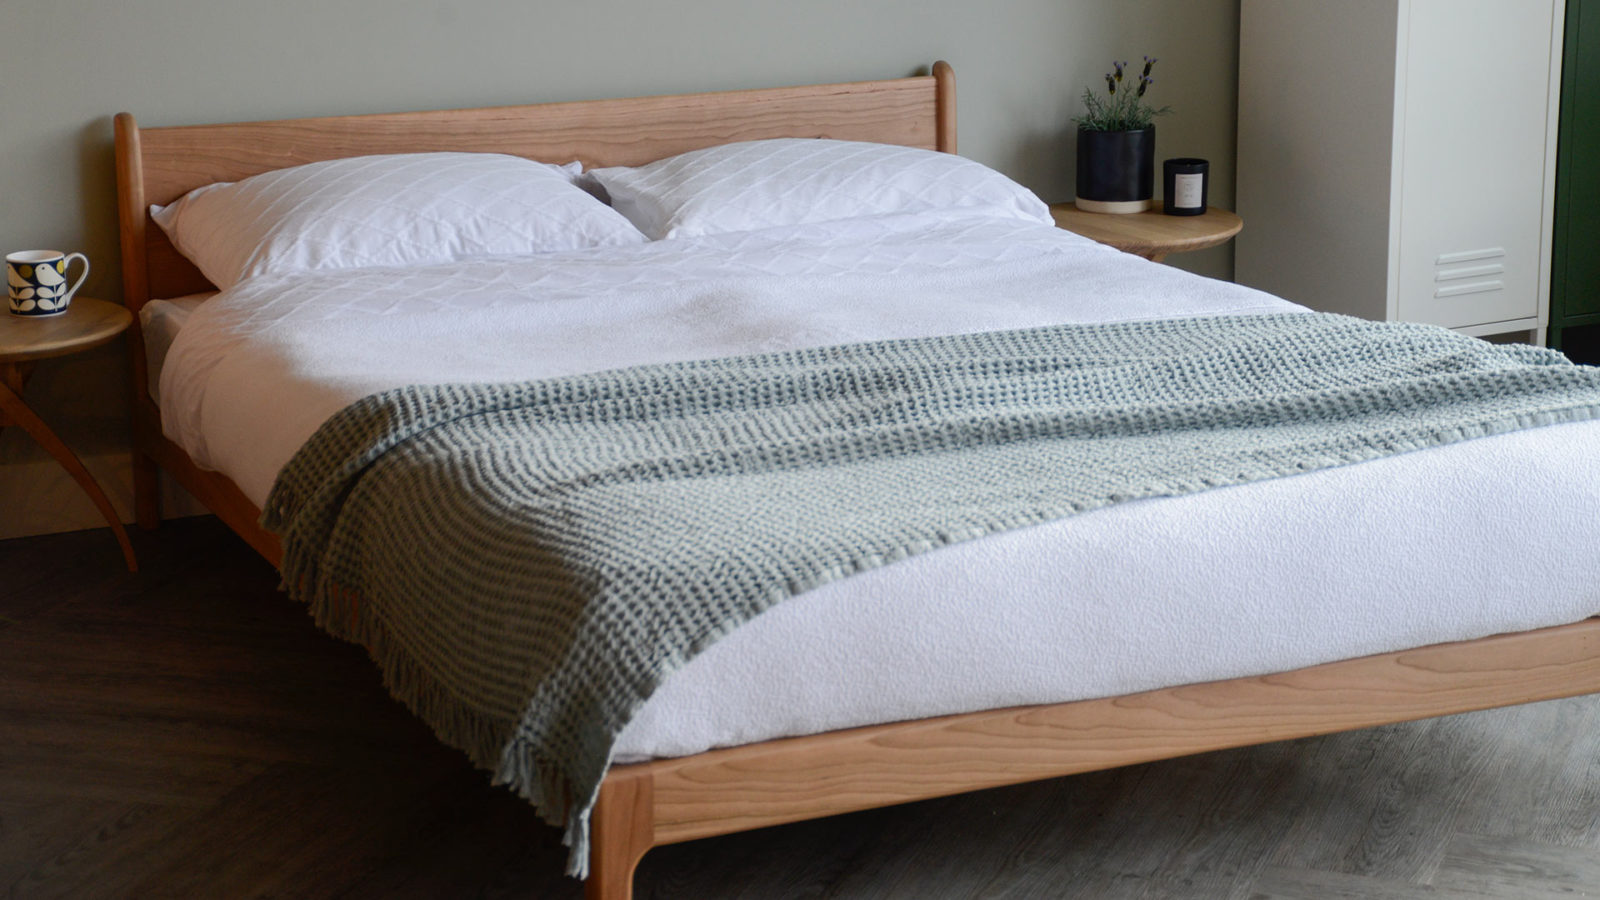 Fresh spring bedding look on the low, solid wood Pimlico bed made in cherry